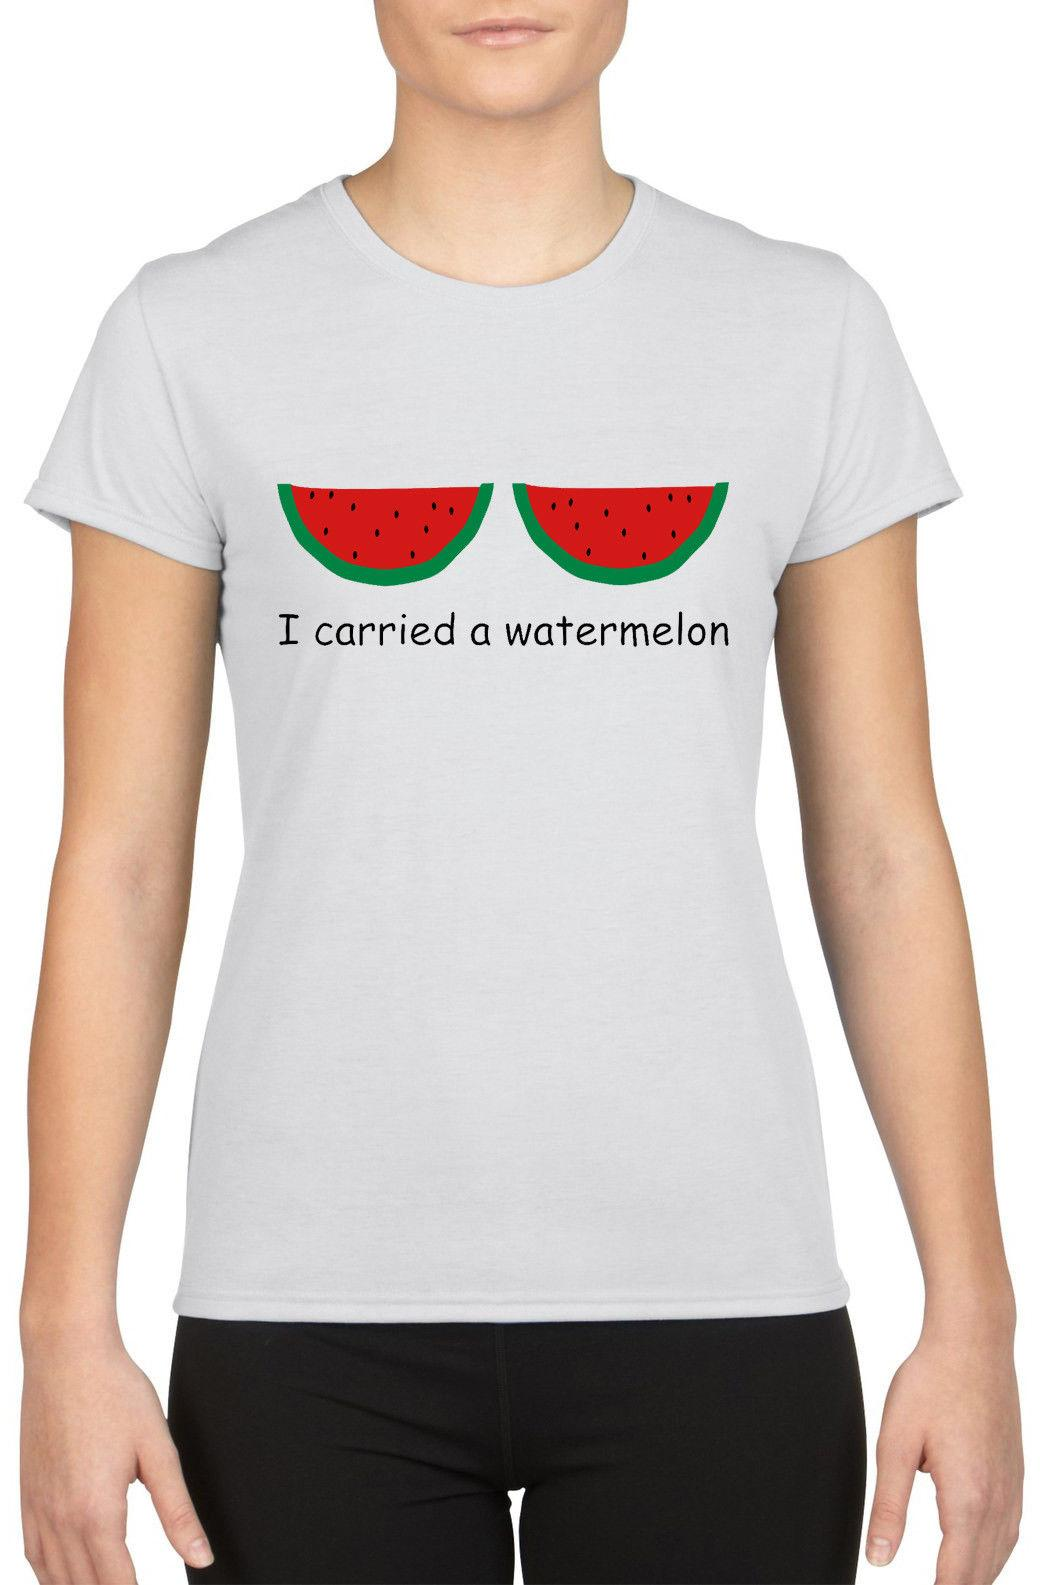 bab3b0dc9 I Carried A Watermelon Boobs Clothes Funny Quotes Slogan Women T Shirt W846  Cartoon T Shirt Men Unisex New Fashion Tshirt Loose Printed T Shirt Funny T  ...